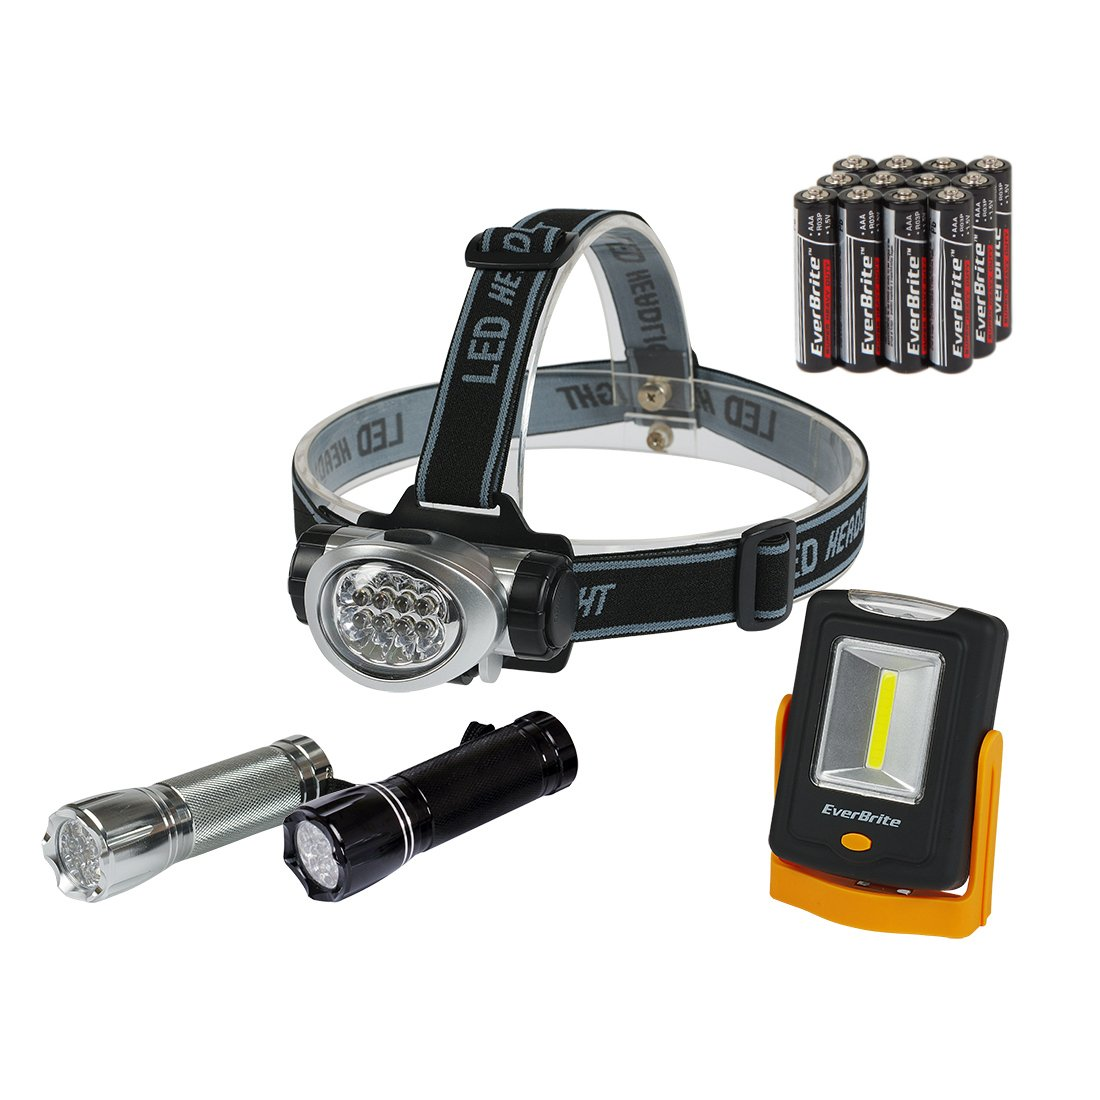 EverBrite LED Headlamps, Handheld Flashlights, COB Work Light With Stand Combo Kit 4-piece Battery Included